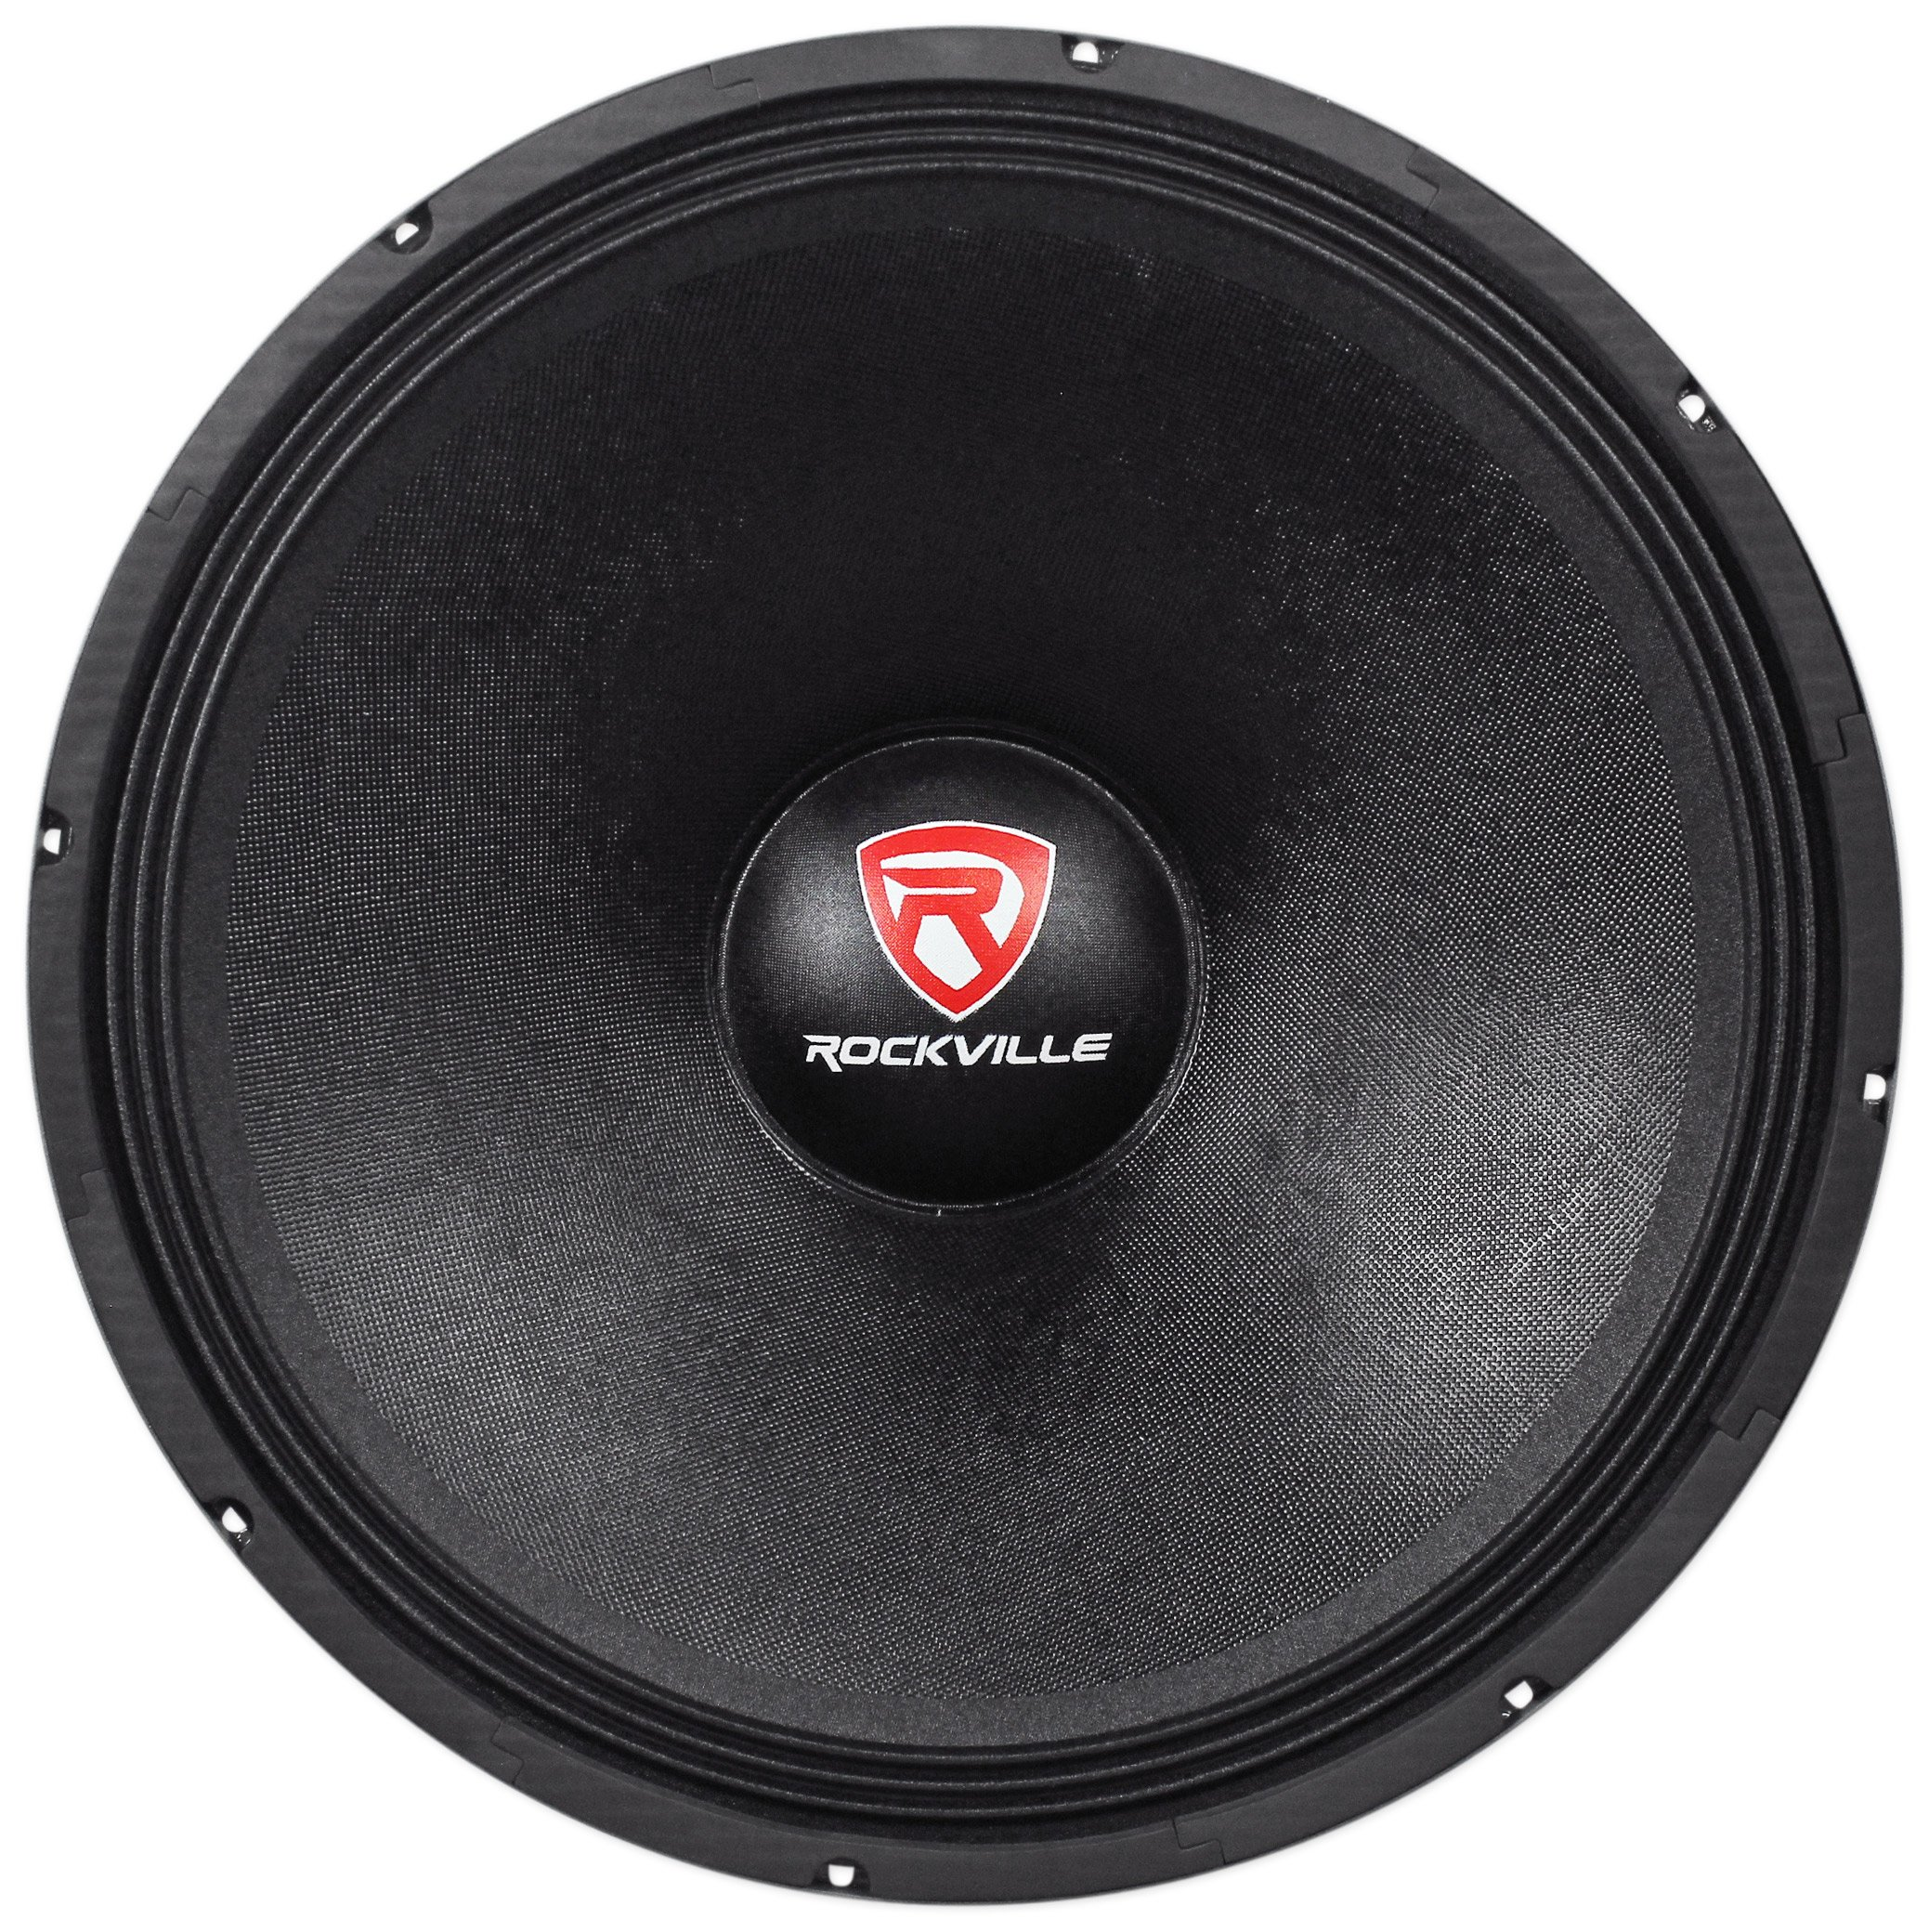 Rockville RVW1800P4 1800w 18'' Raw DJ Subwoofer 4 Ohm Sub Woofer 240OZ Magnet